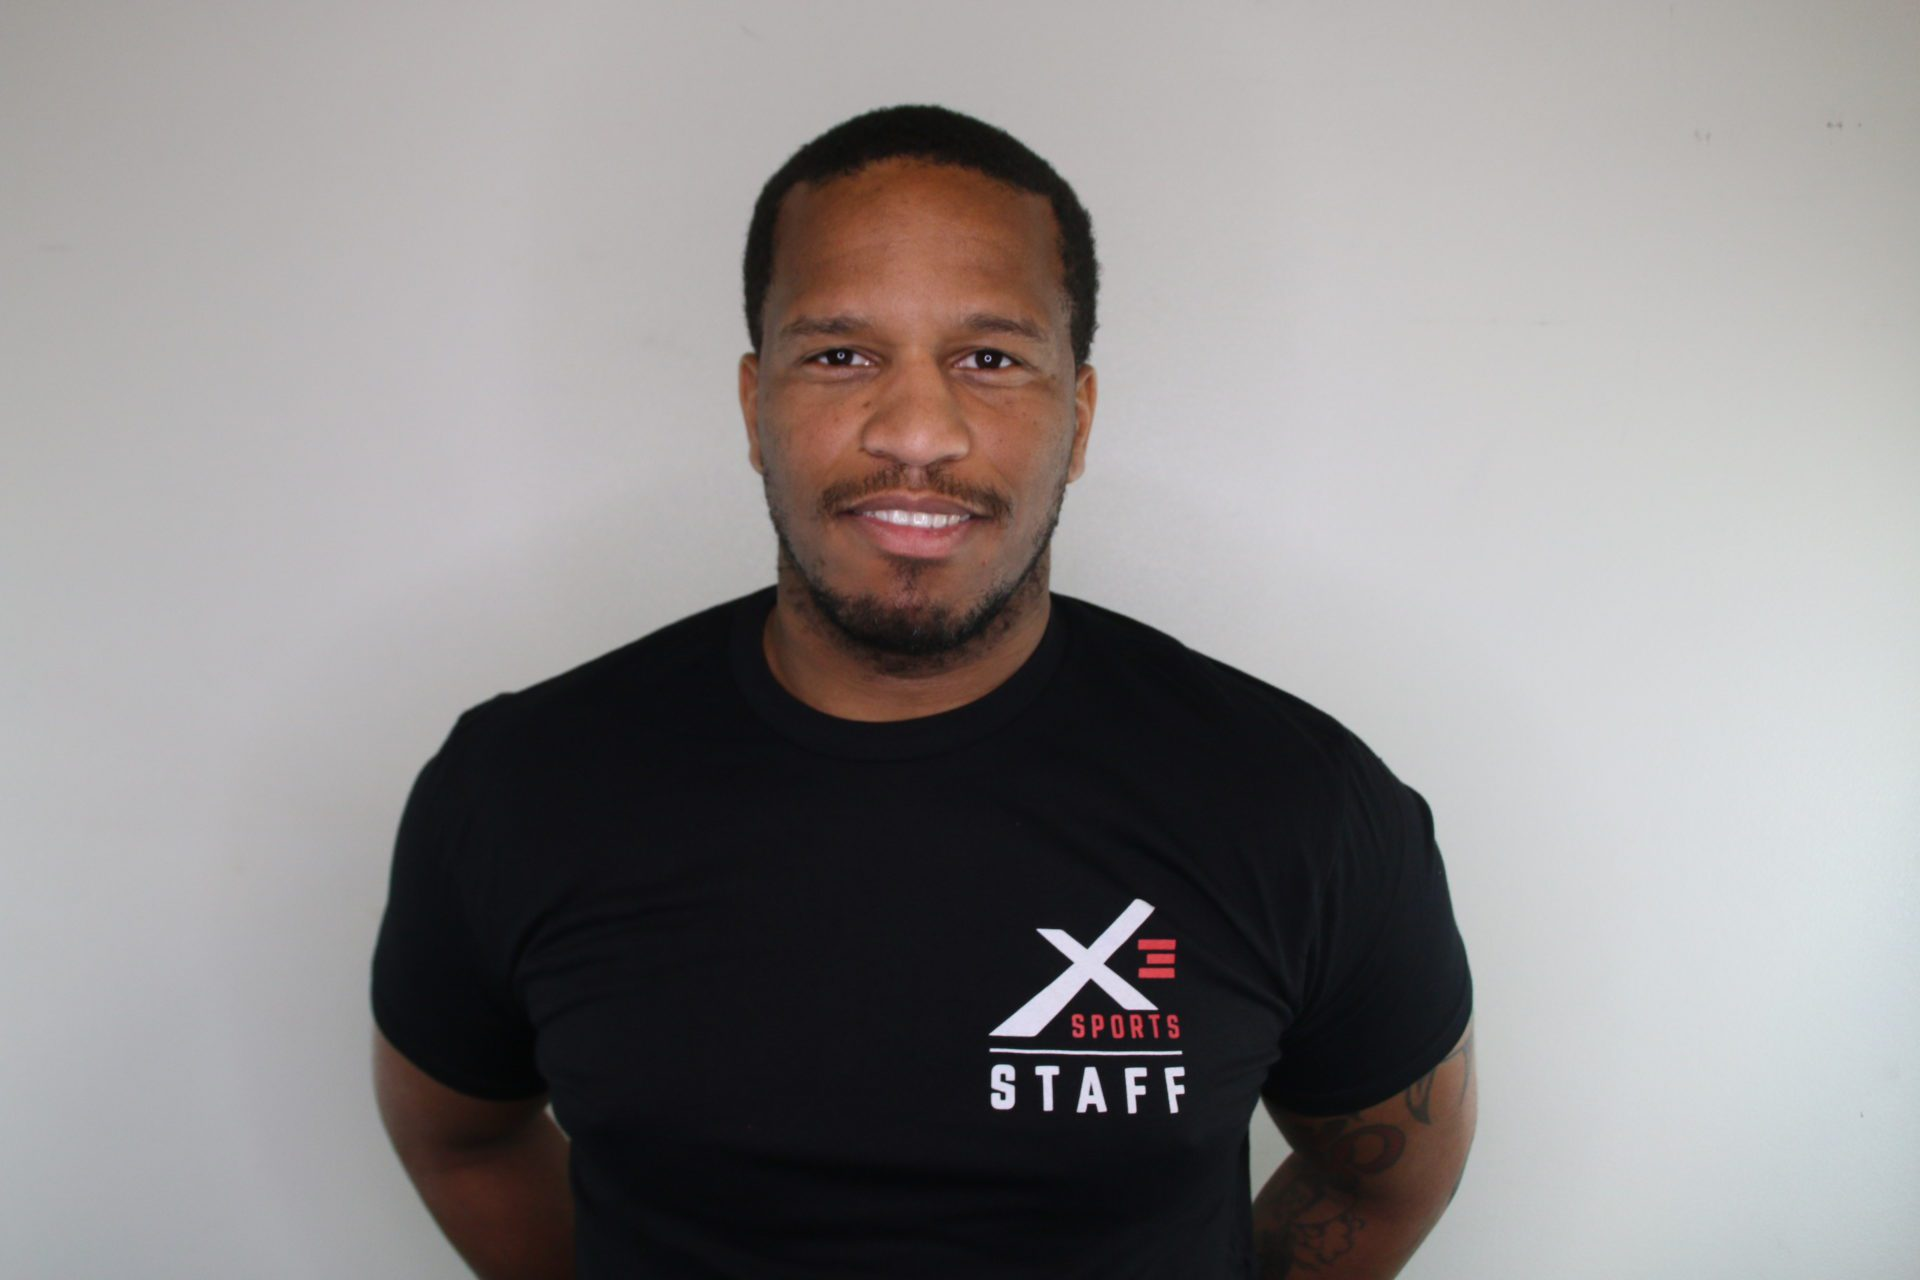 Kit Ruddock | X3 Sports Employee | X3 Sports